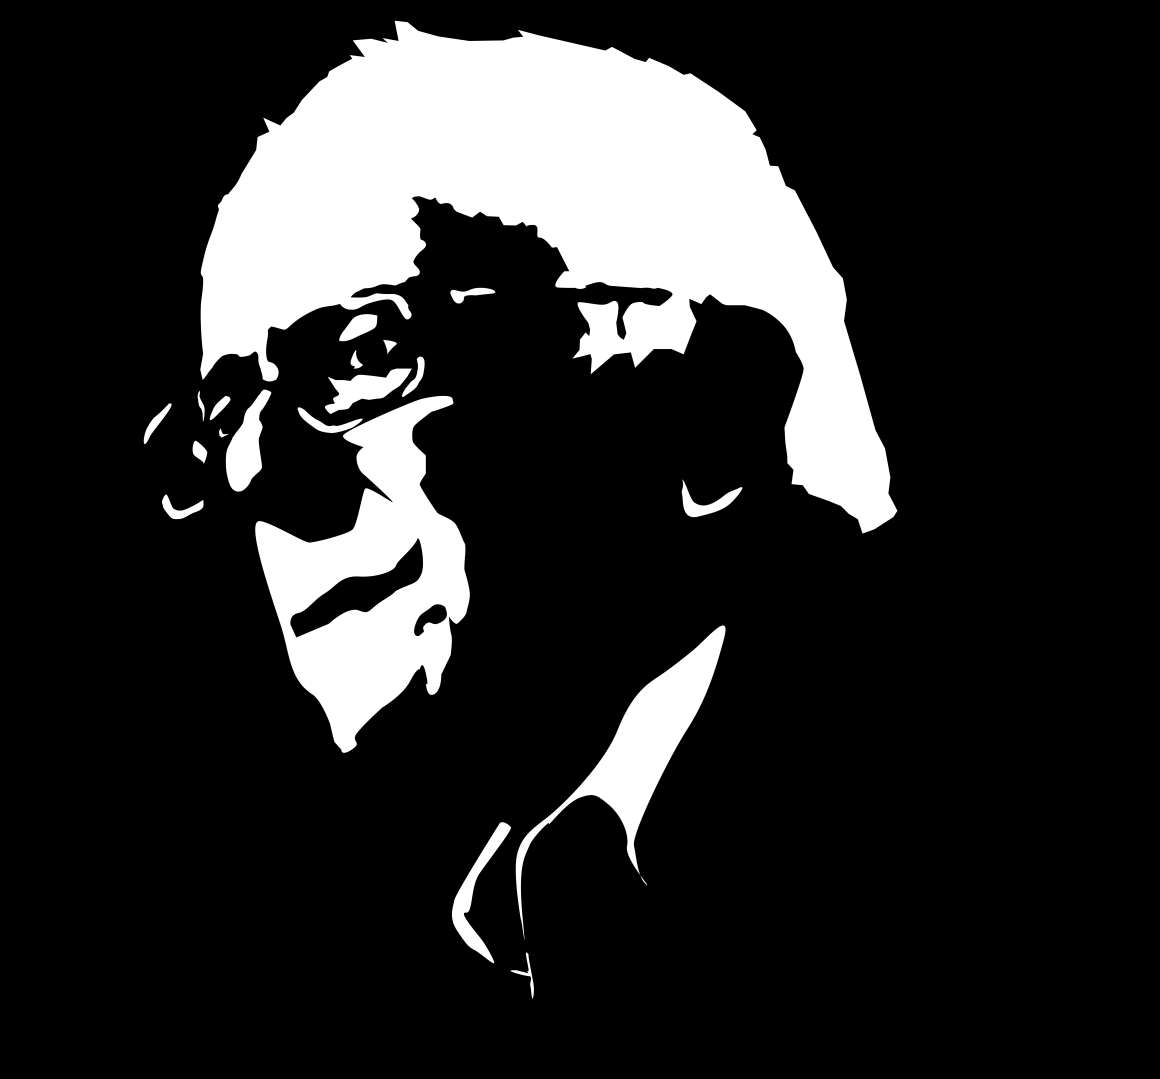 An Argument for a Sanders Presidency